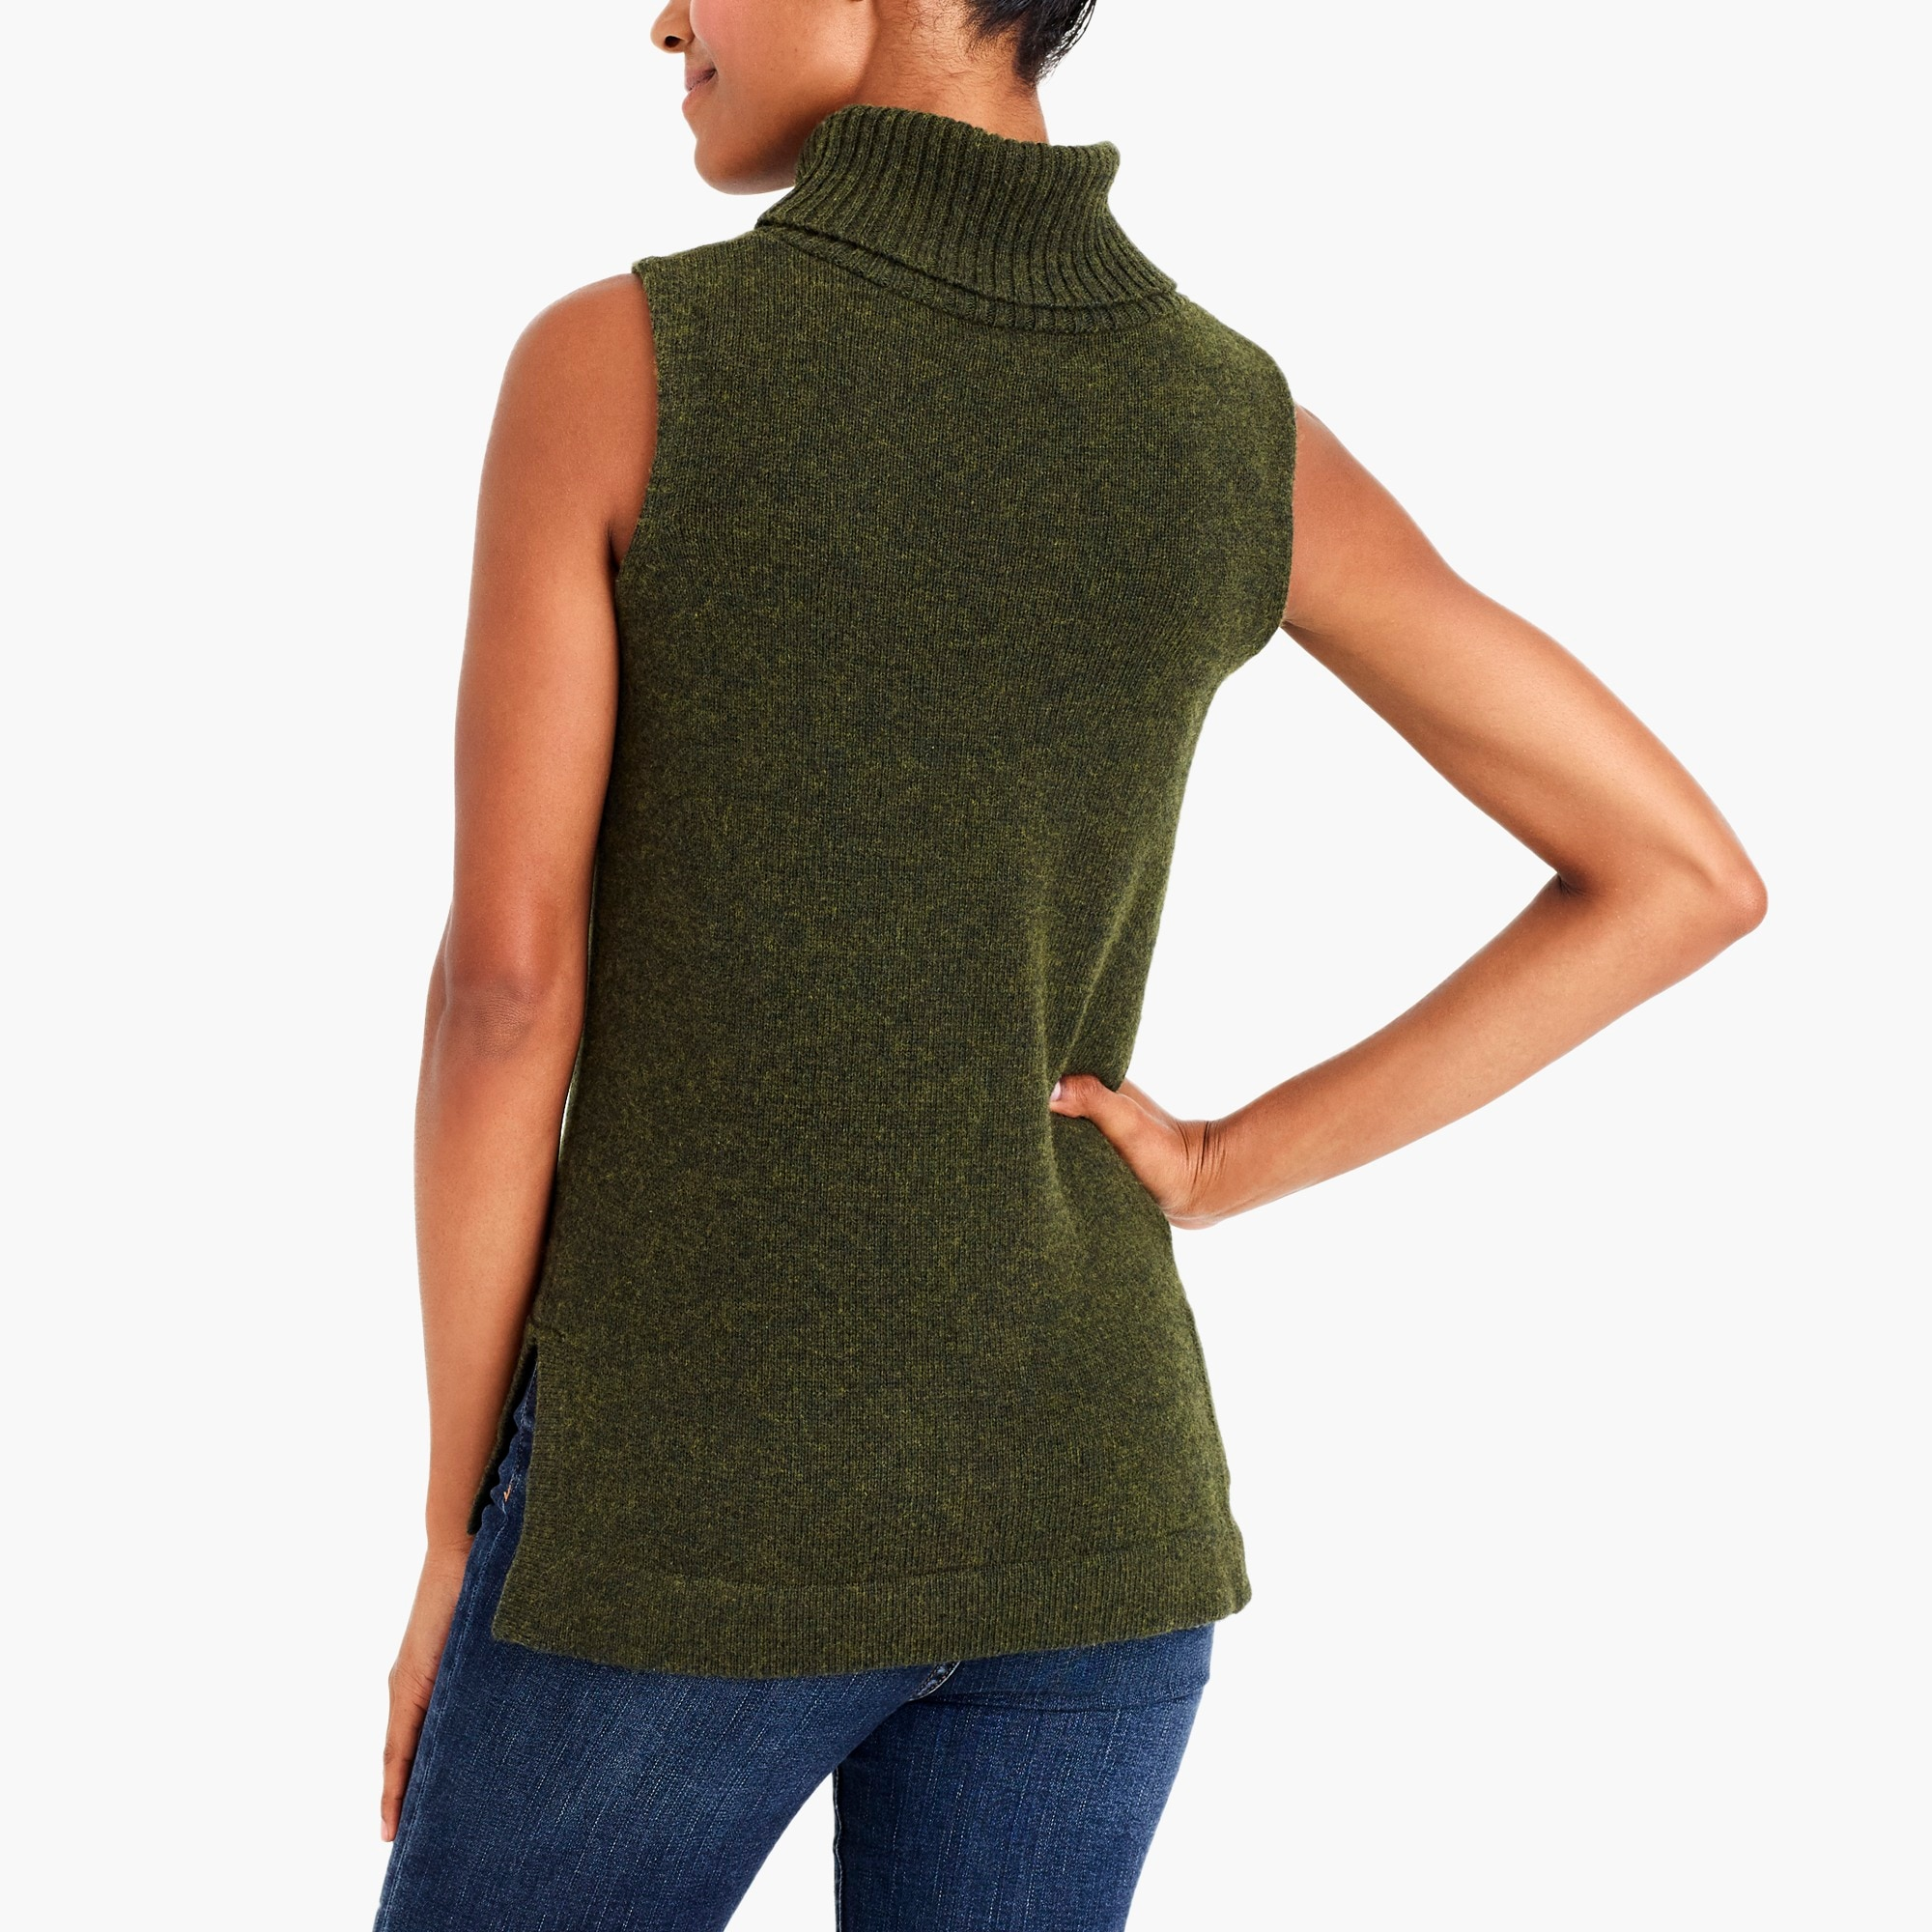 Turtleneck sweater tank top